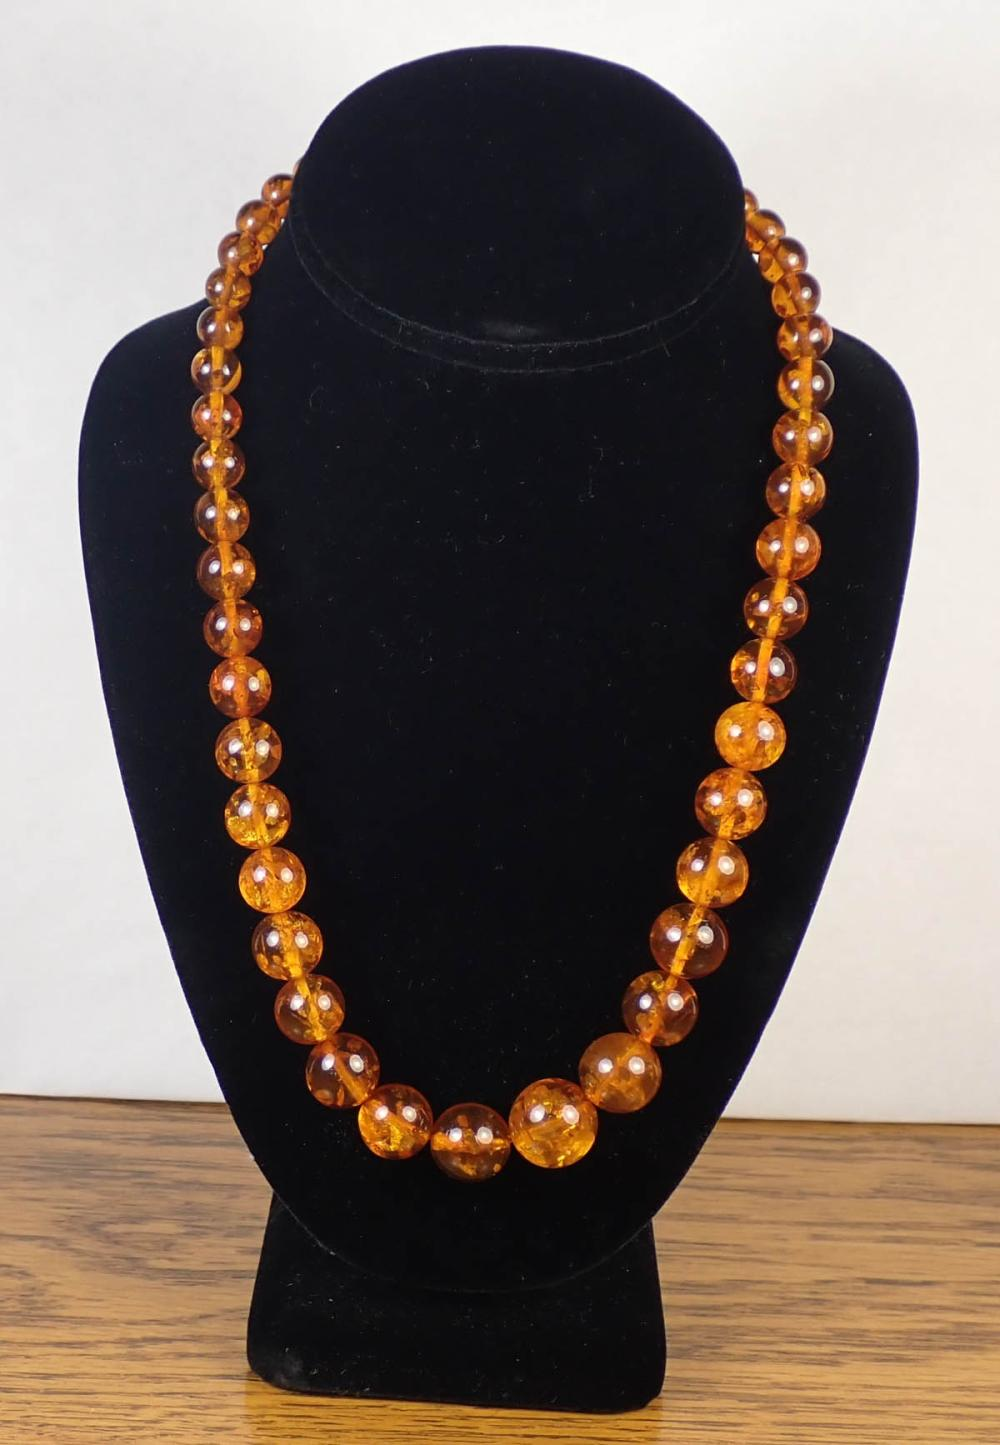 TWO NATURAL BALTIC AMBER BEAD NECKLACES